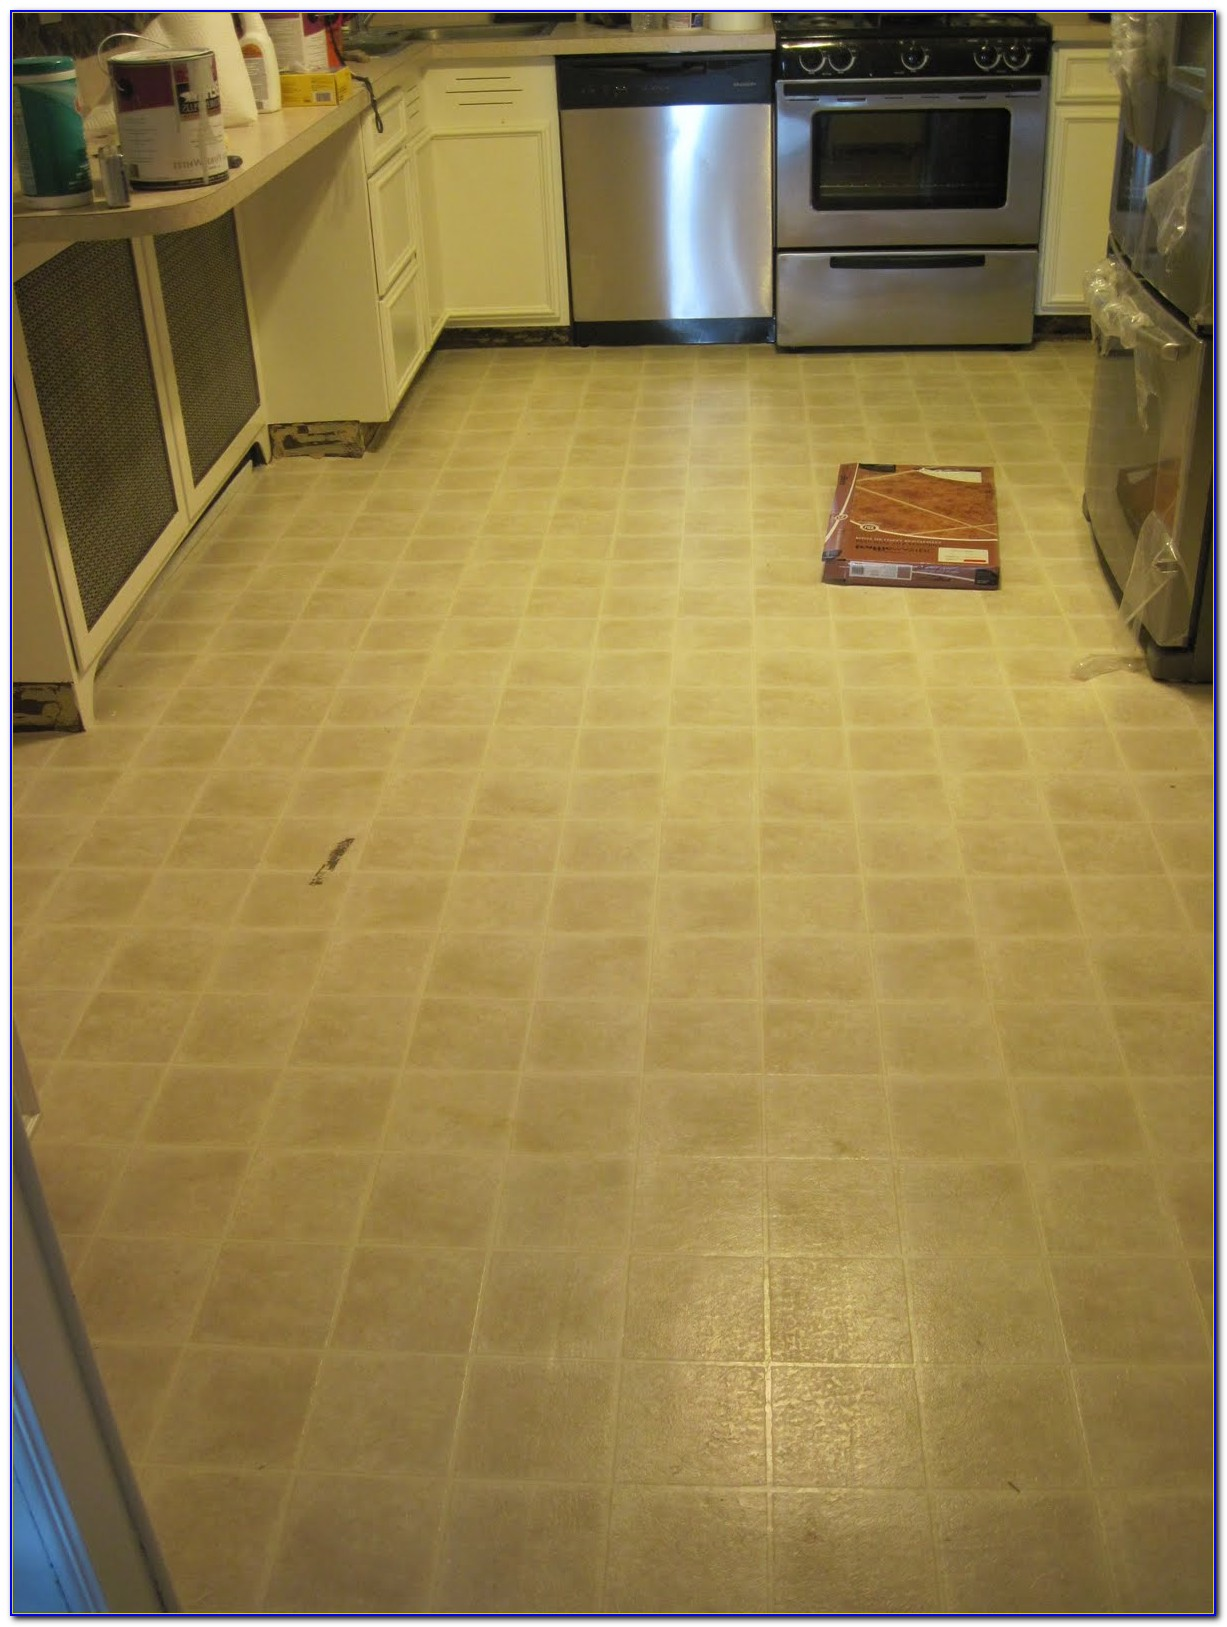 Grout Between Vinyl Floor Tiles